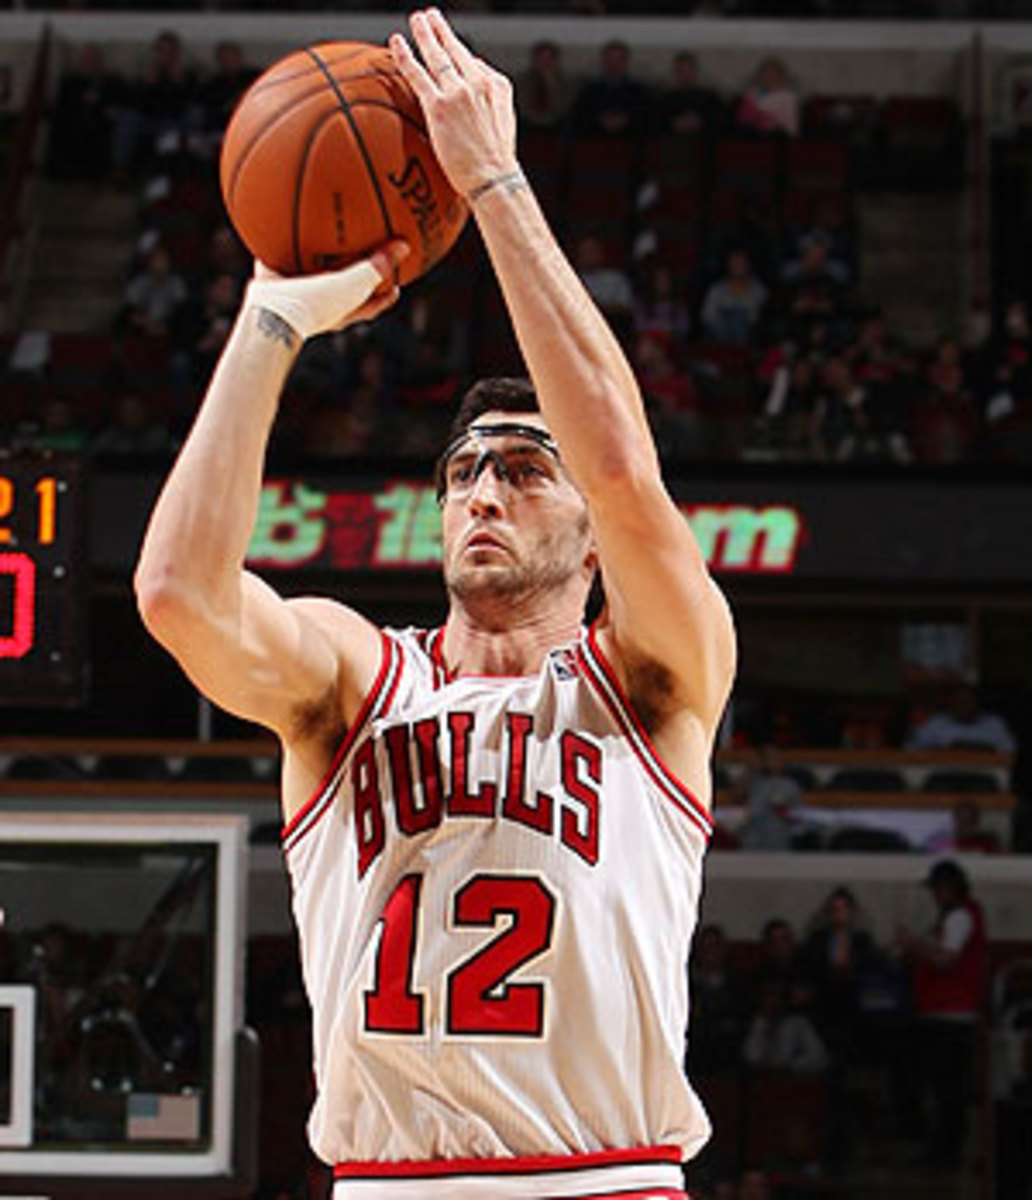 Kirk Hinrich to sign with Chicago Bulls - Sports Illustrated